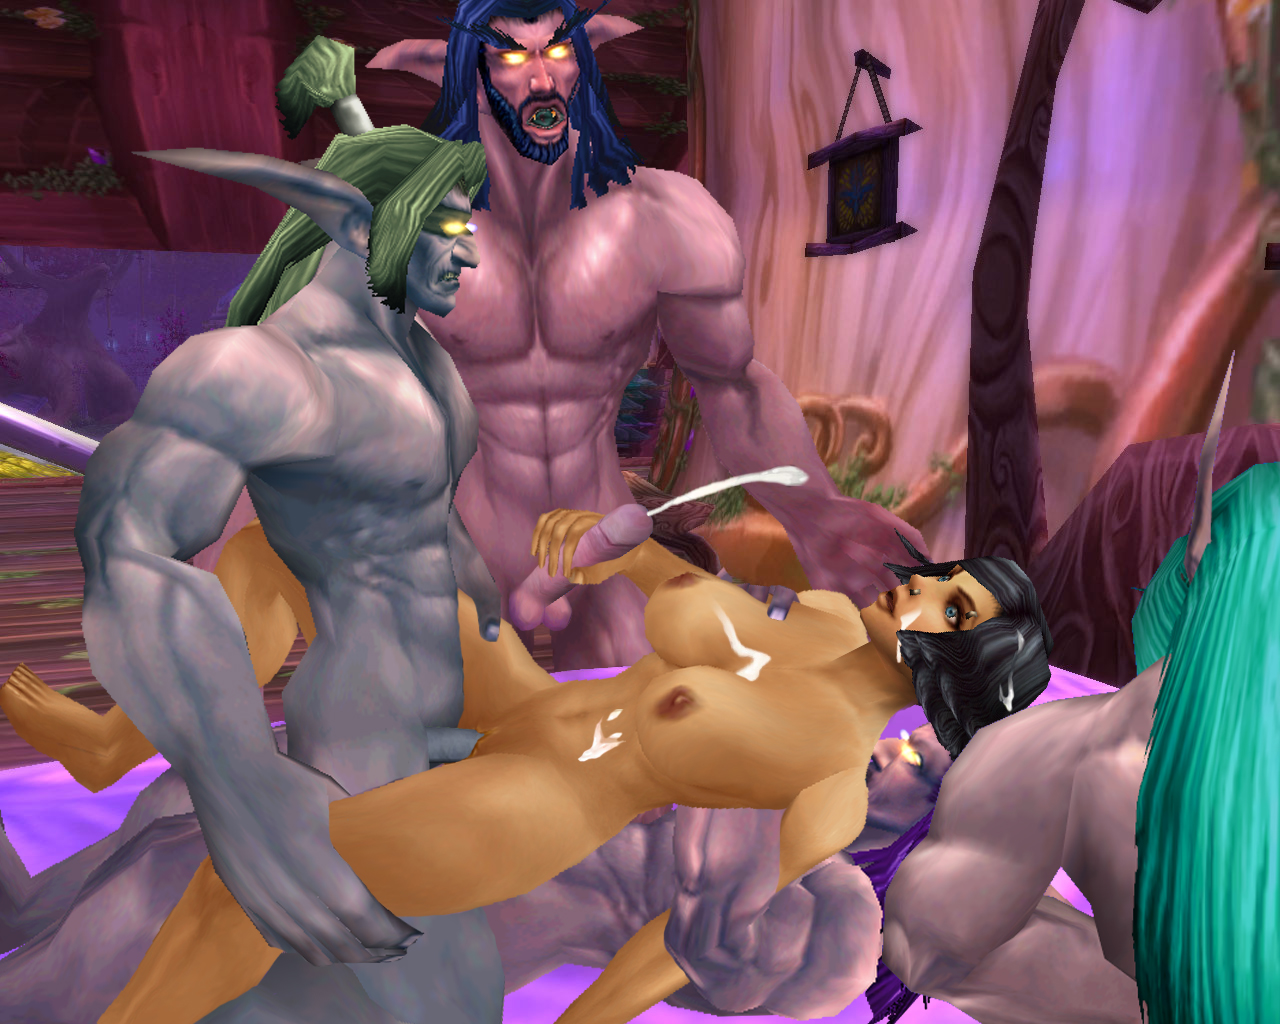 Free world of warcraft sex videos porn video